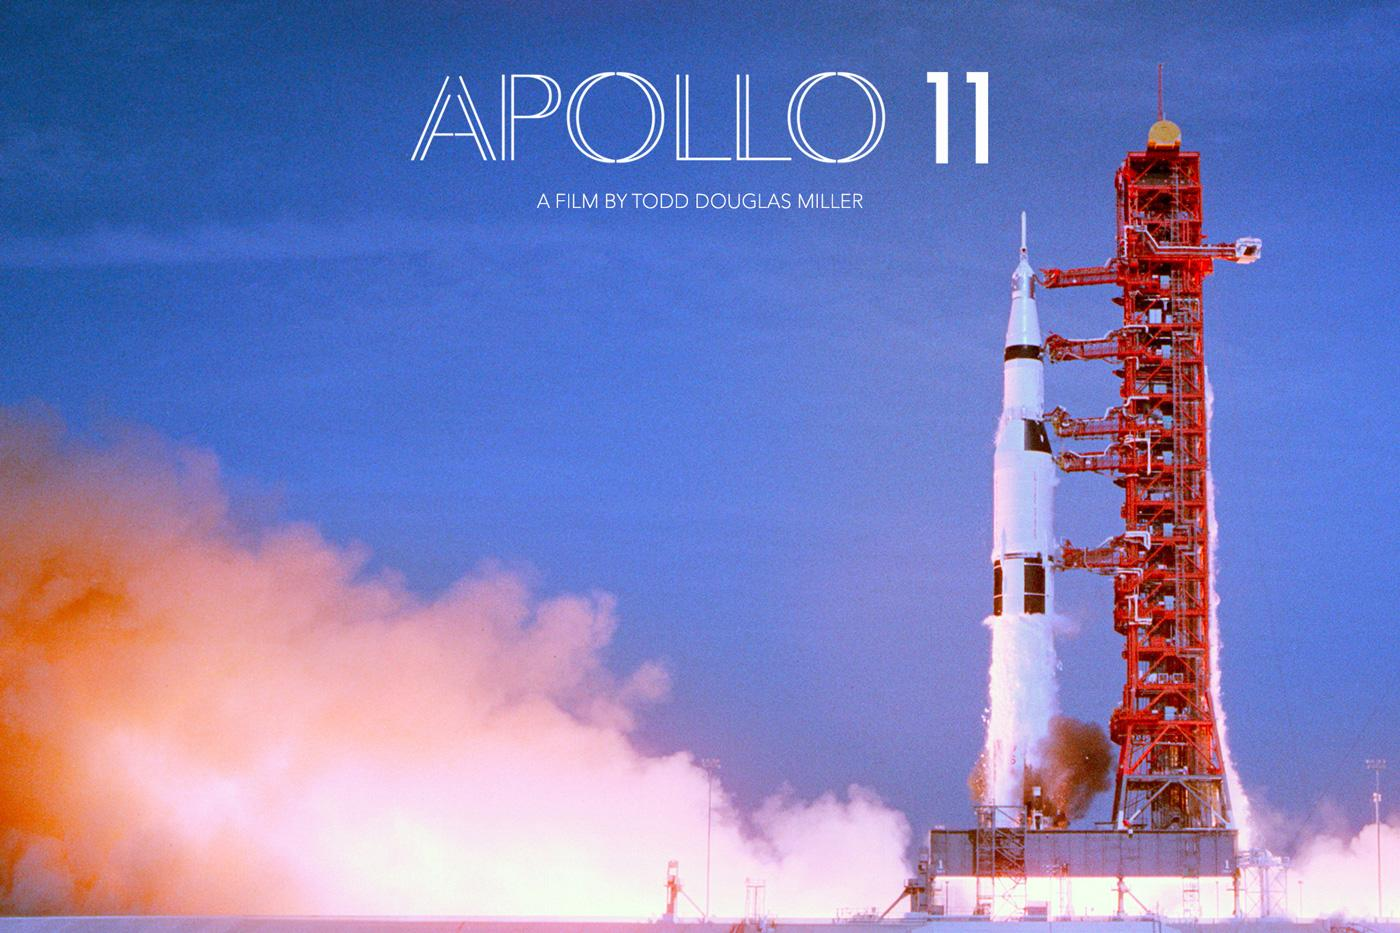 Apollo 11 (film)